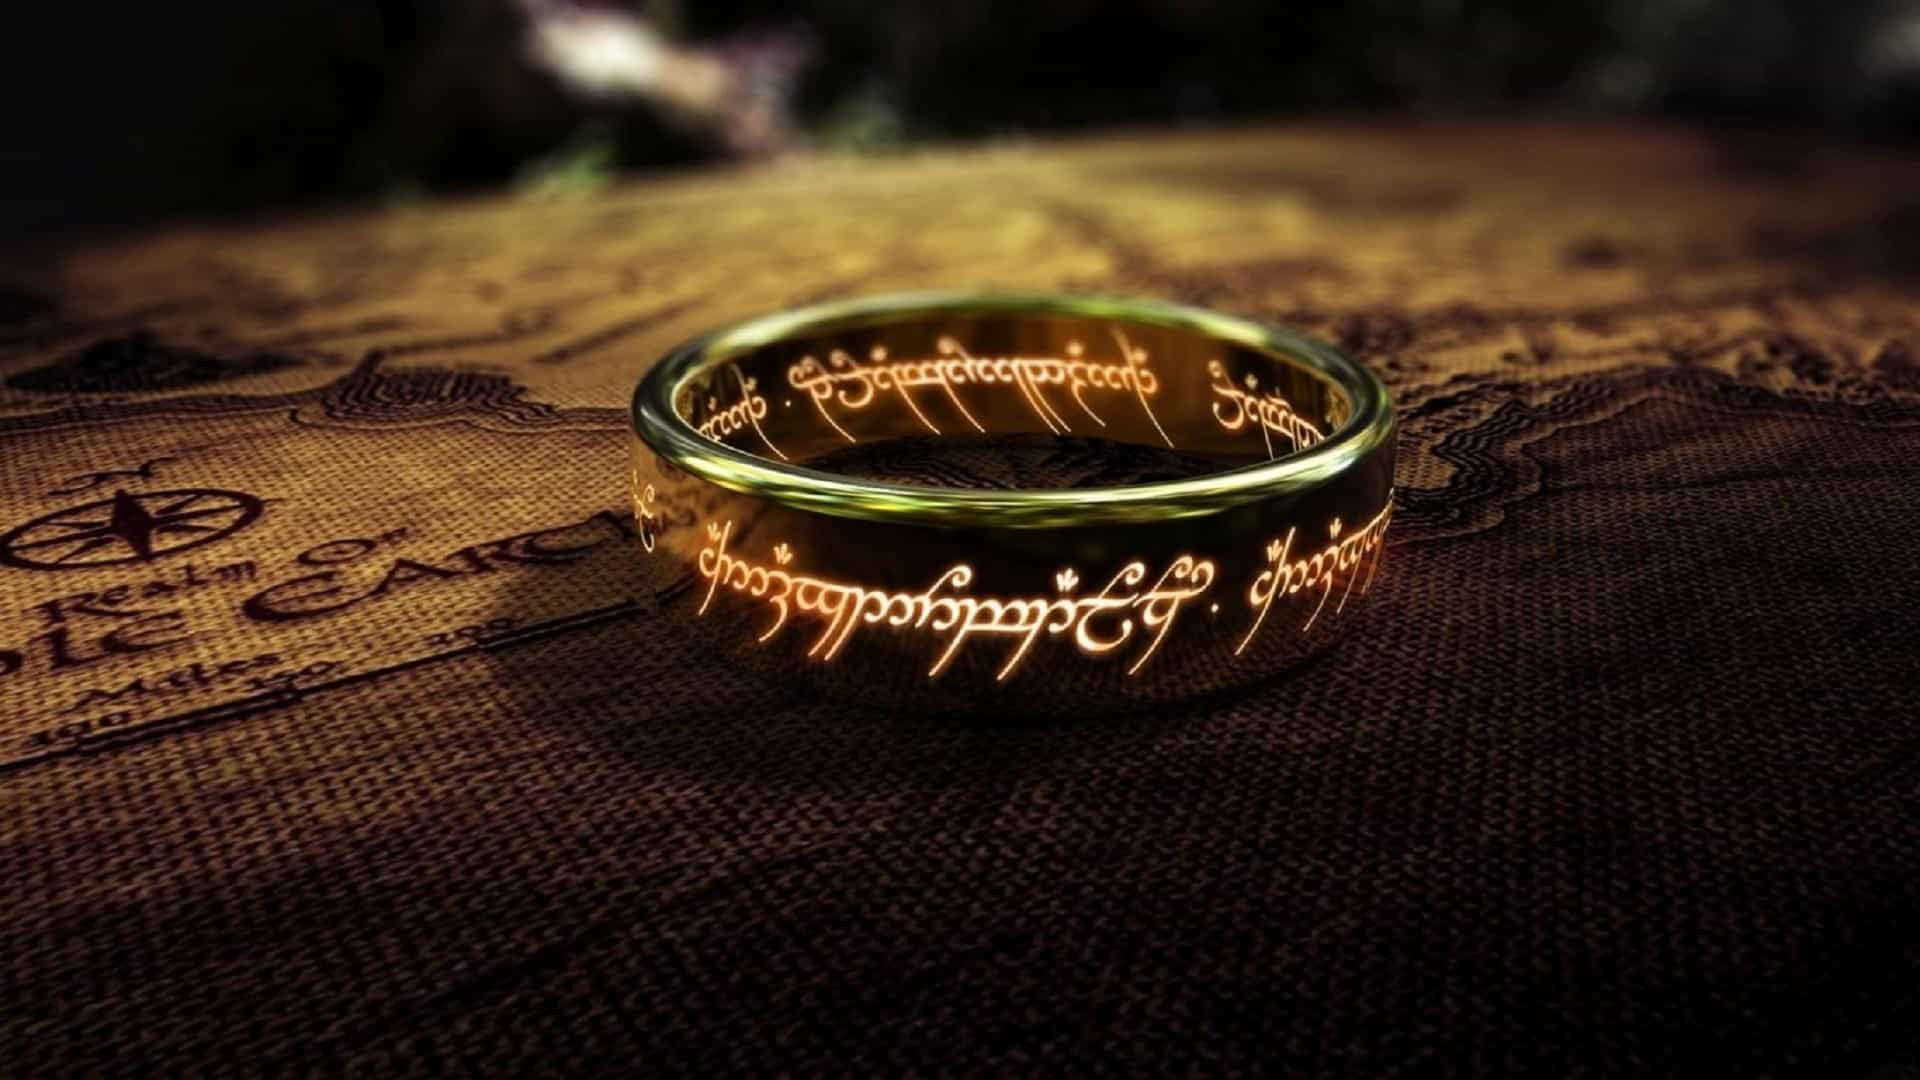 Extraordinary Value & One Ring to Rule them All